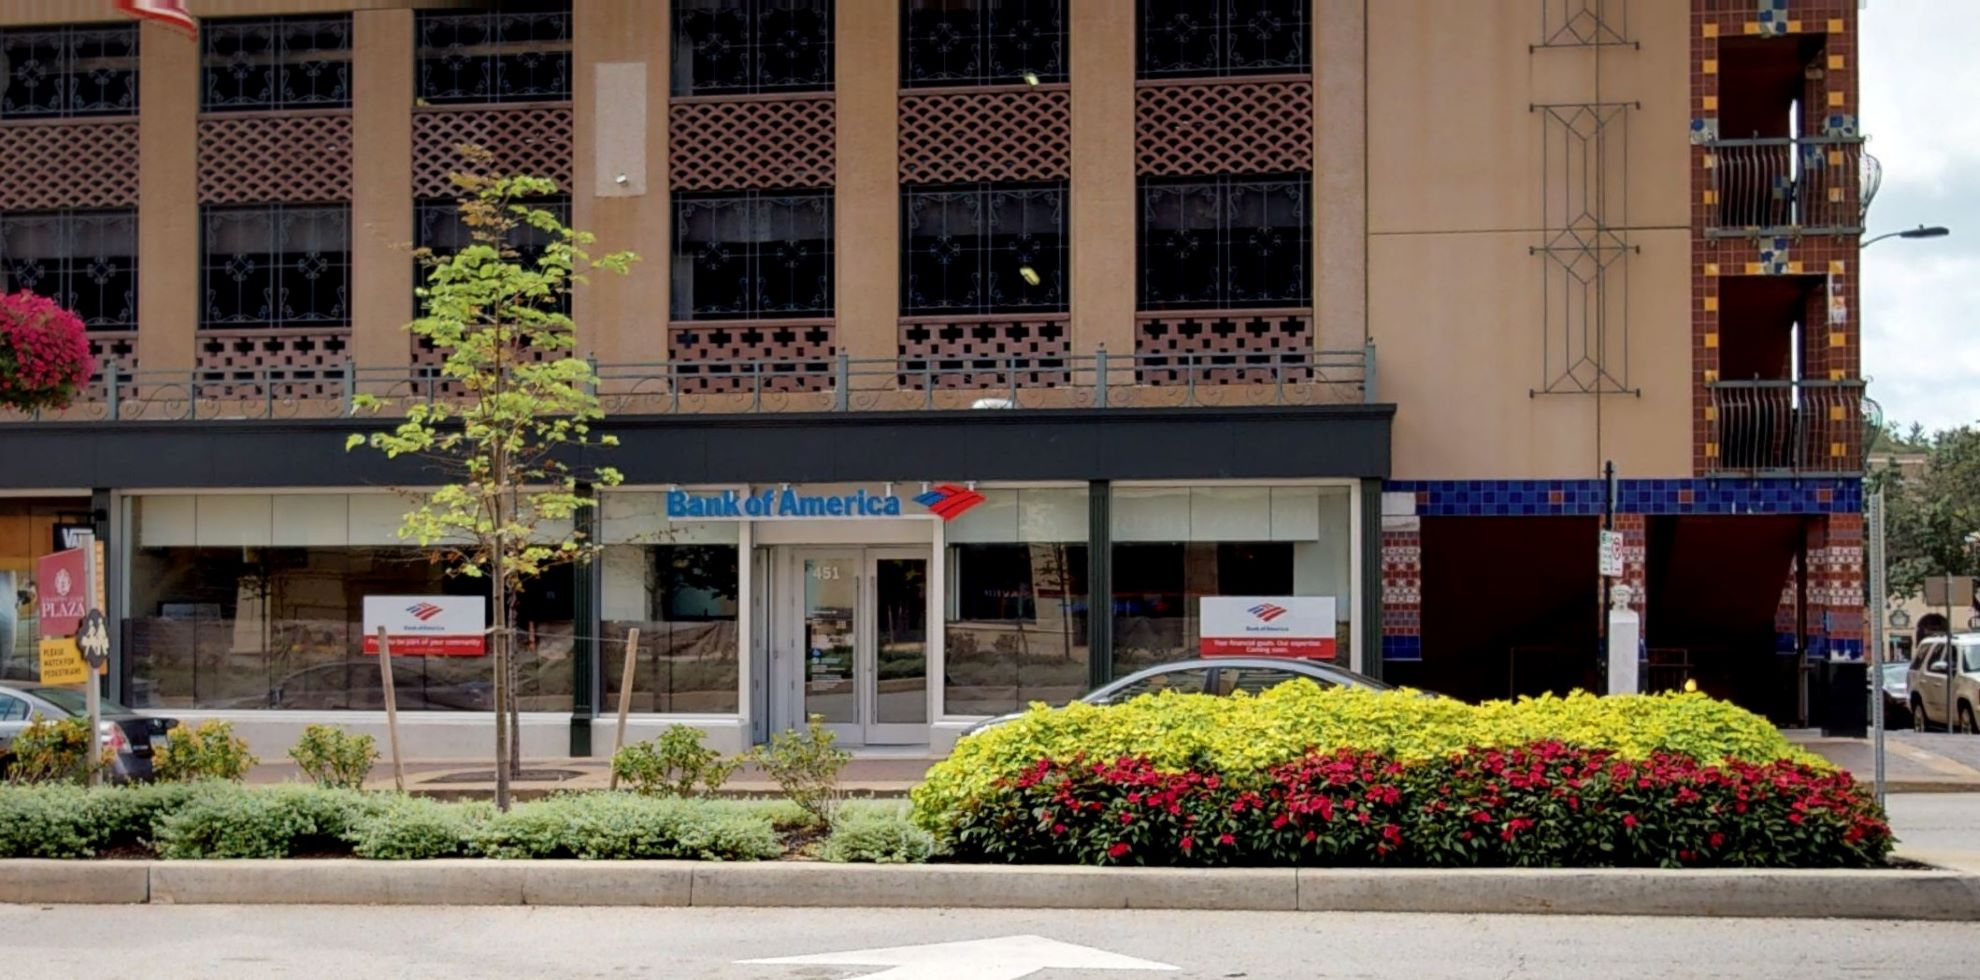 Bank of America financial center with walk-up ATM   451 W 47th St, Kansas City, MO 64112